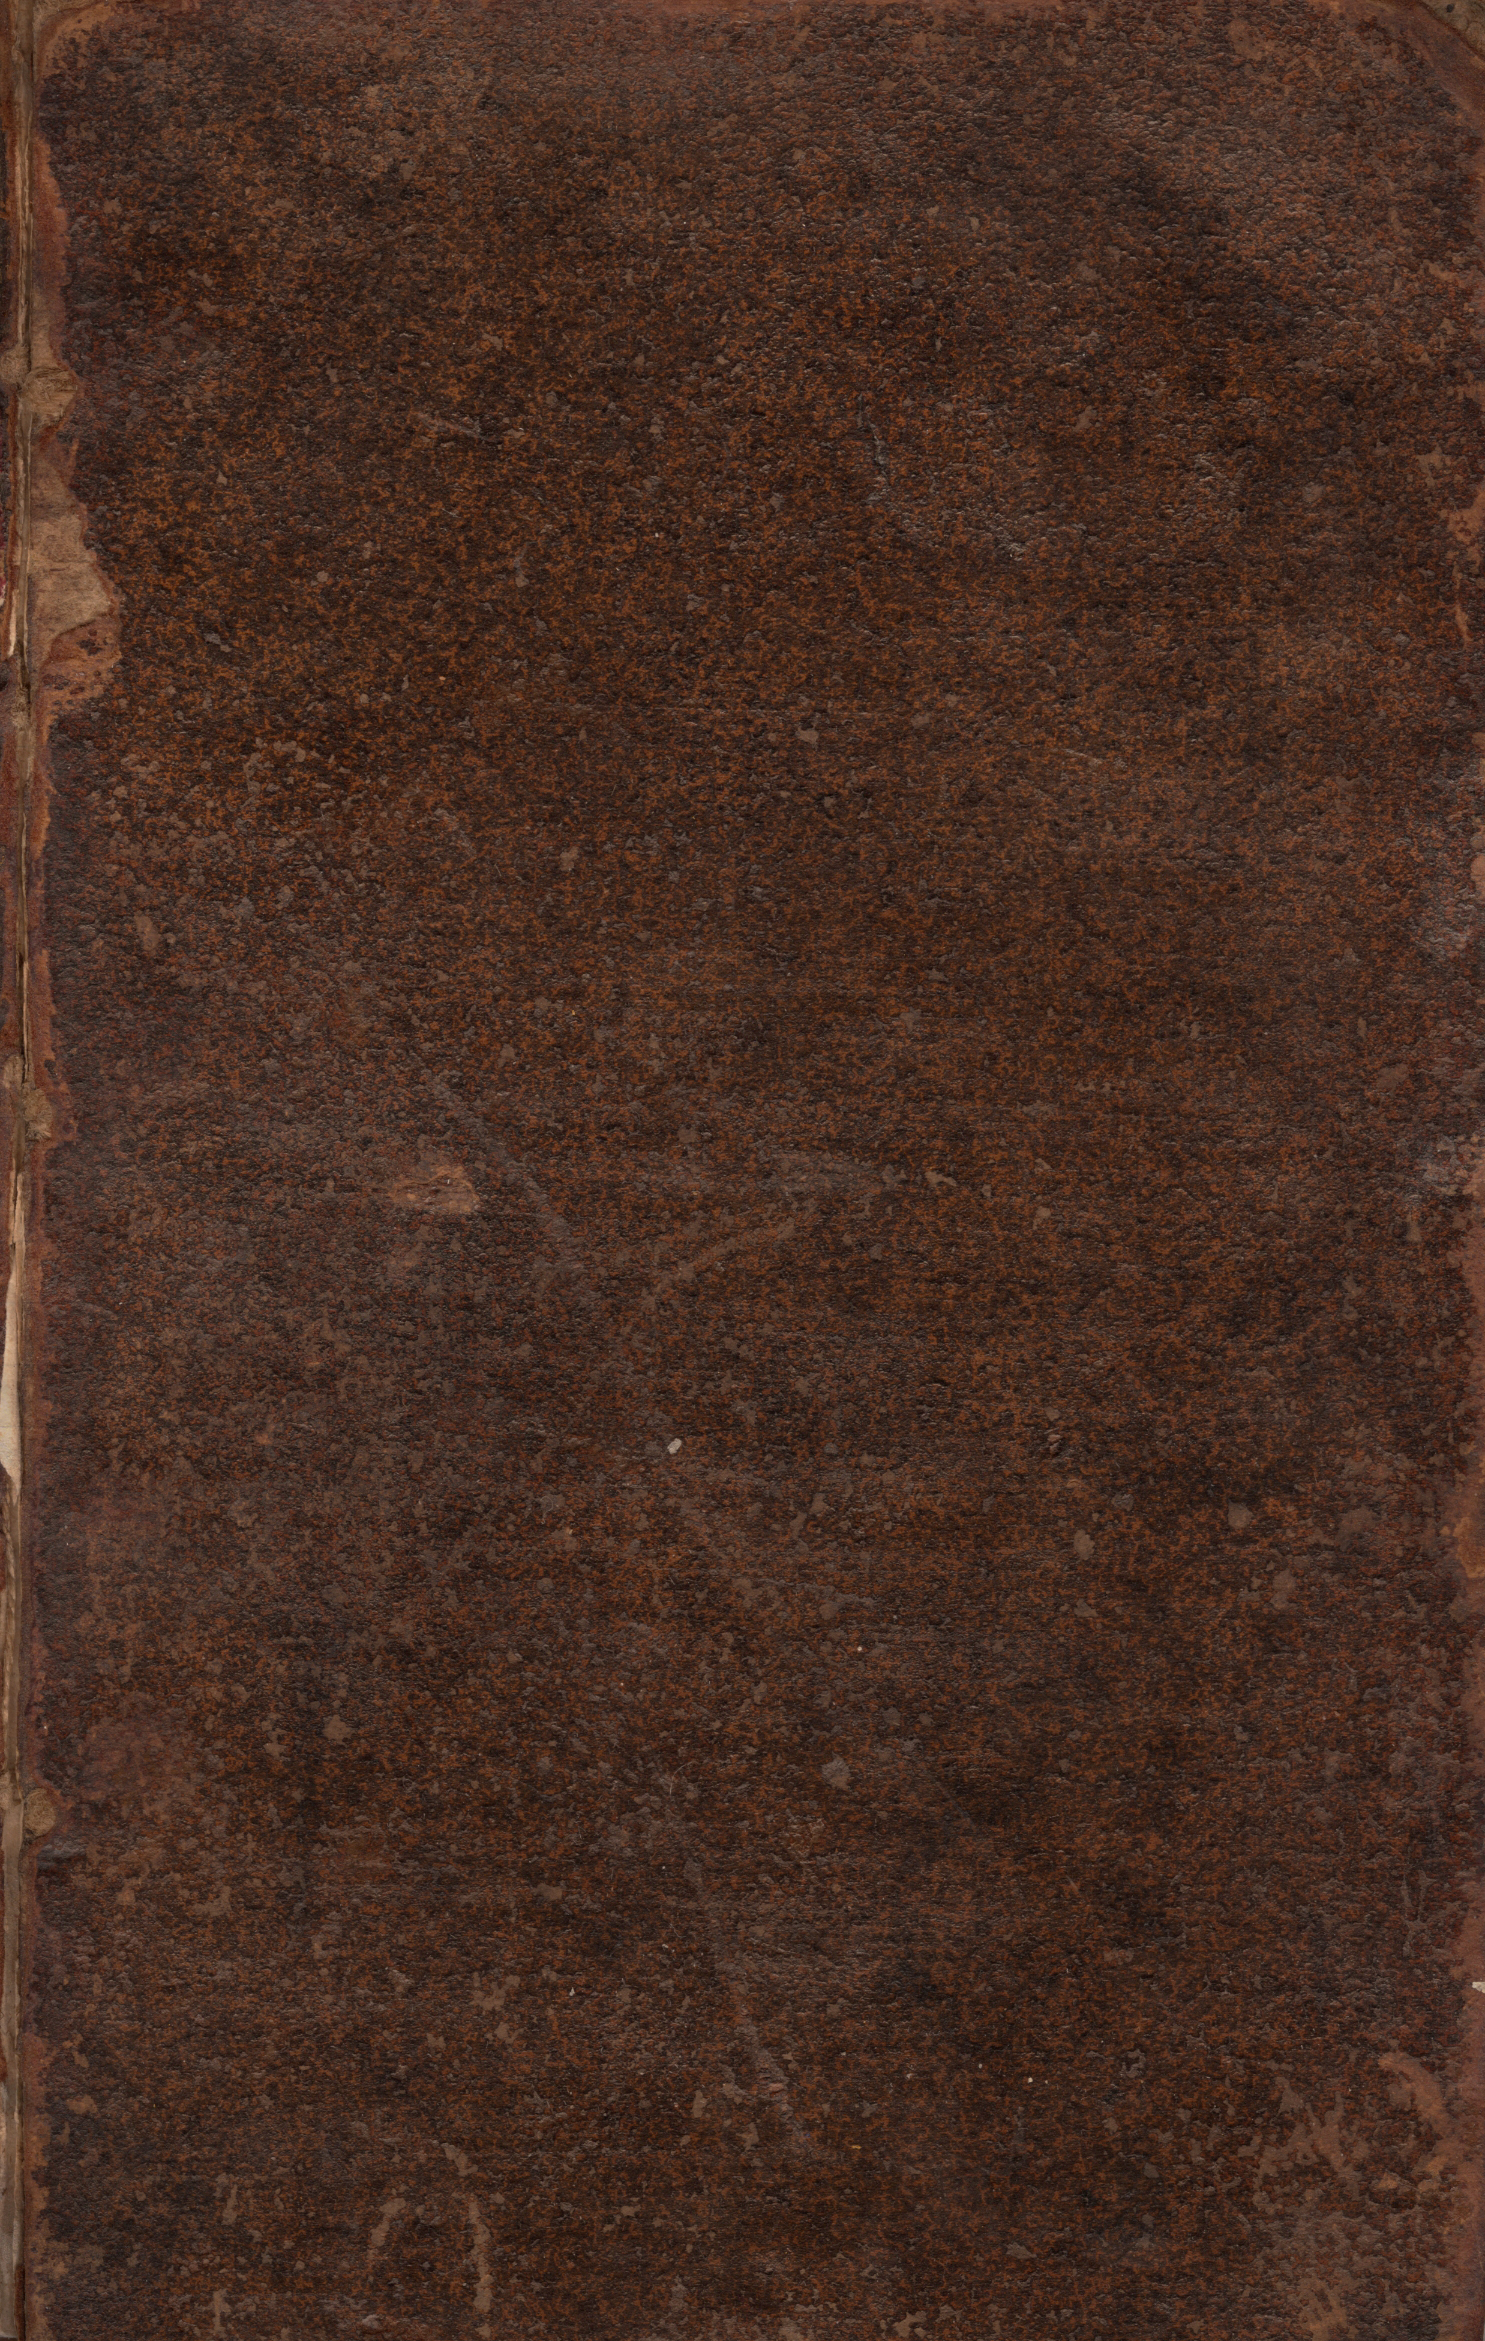 Free Grungy Front Book Cover Texture L T